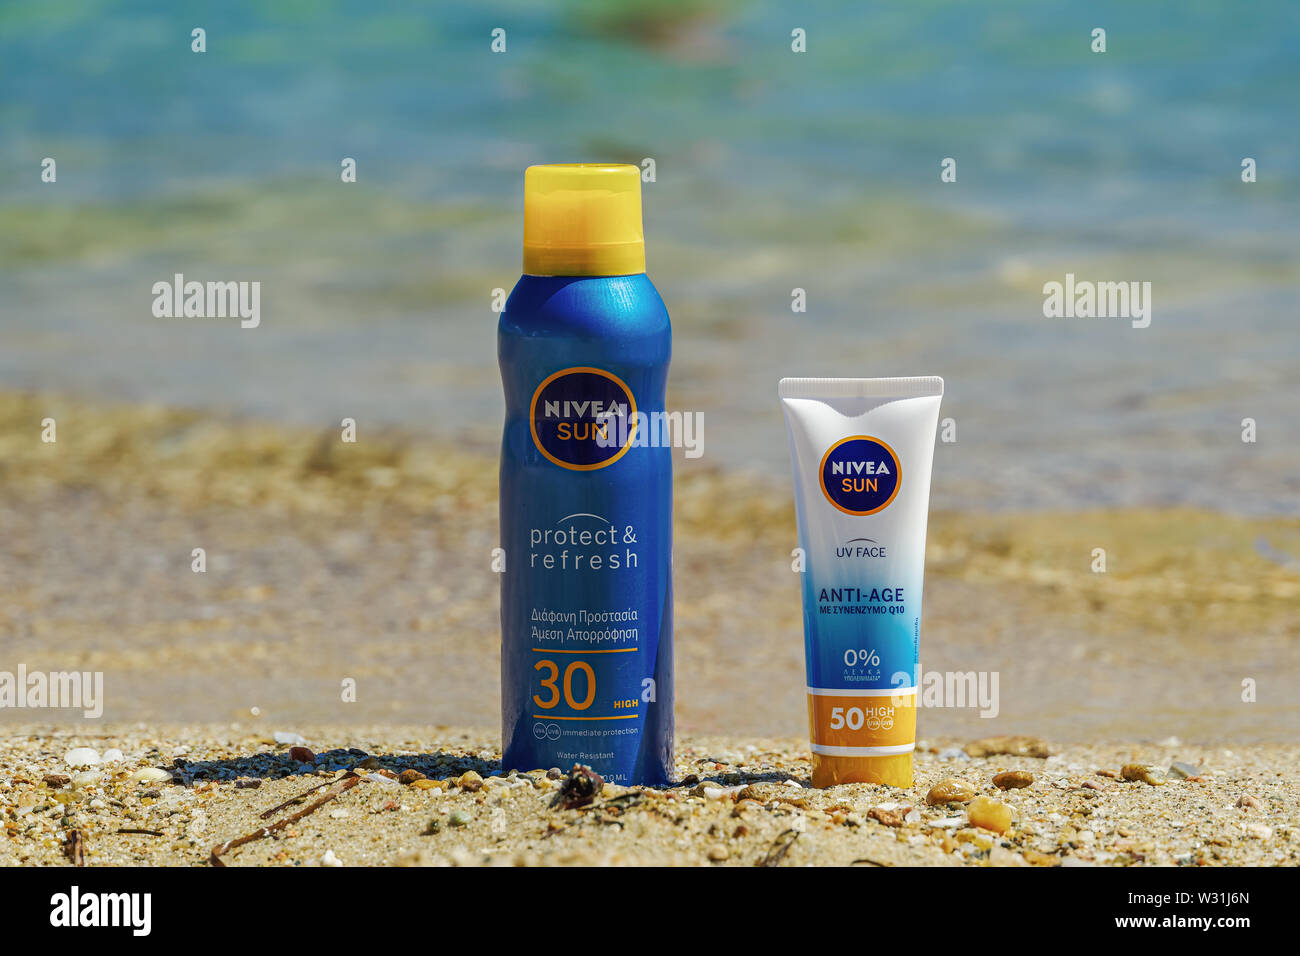 Nivea Sun body & face protection sunscreen creams on the beach with sea background. UV rays protect & refresh & anti-age lotions with SPF protection. - Stock Image